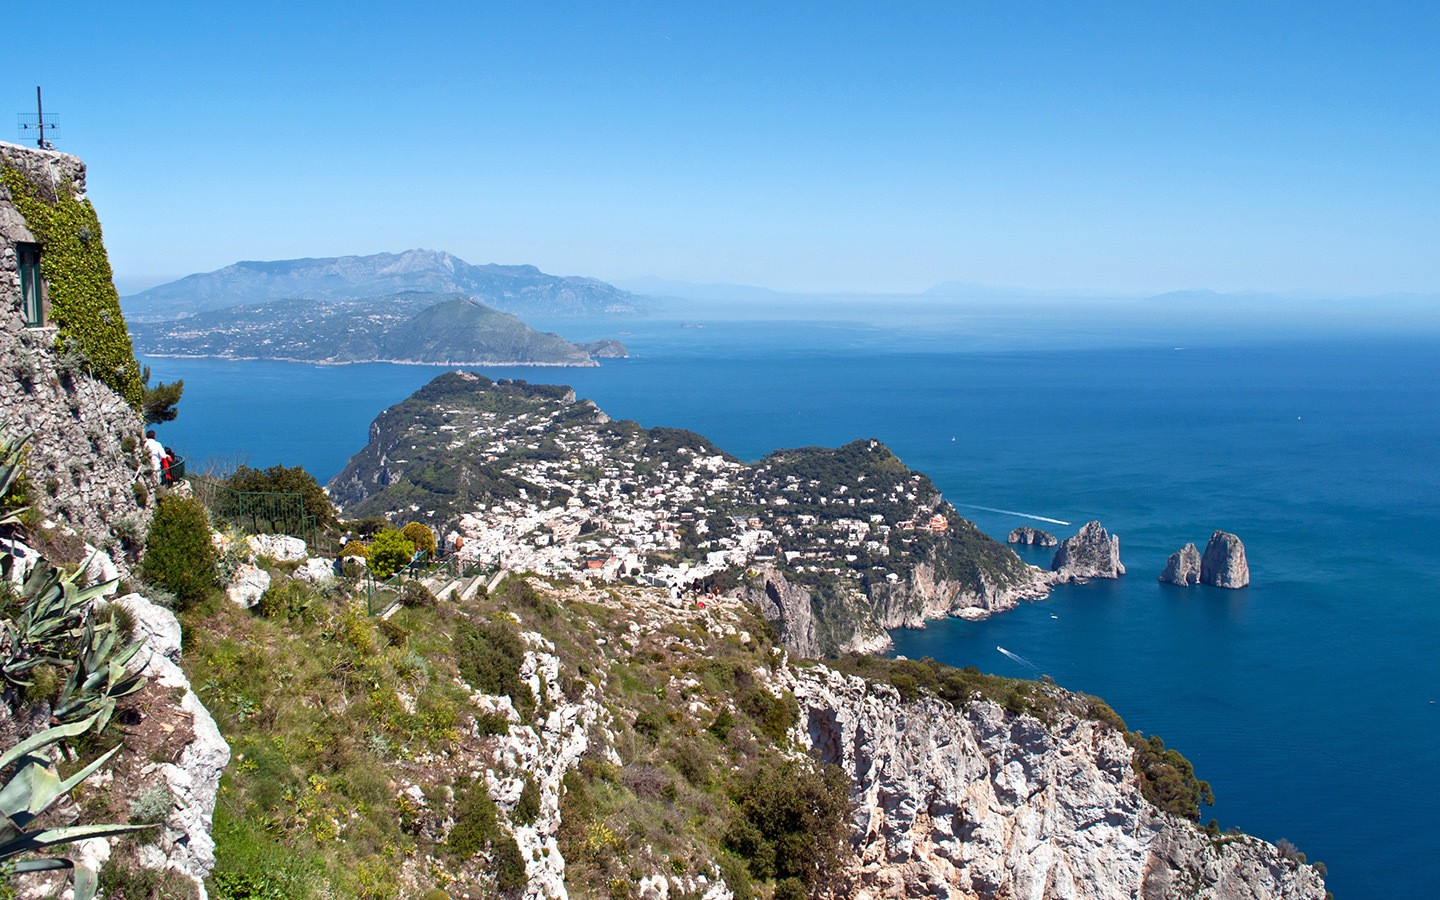 Views from Monte Solaro in Capri, Italy